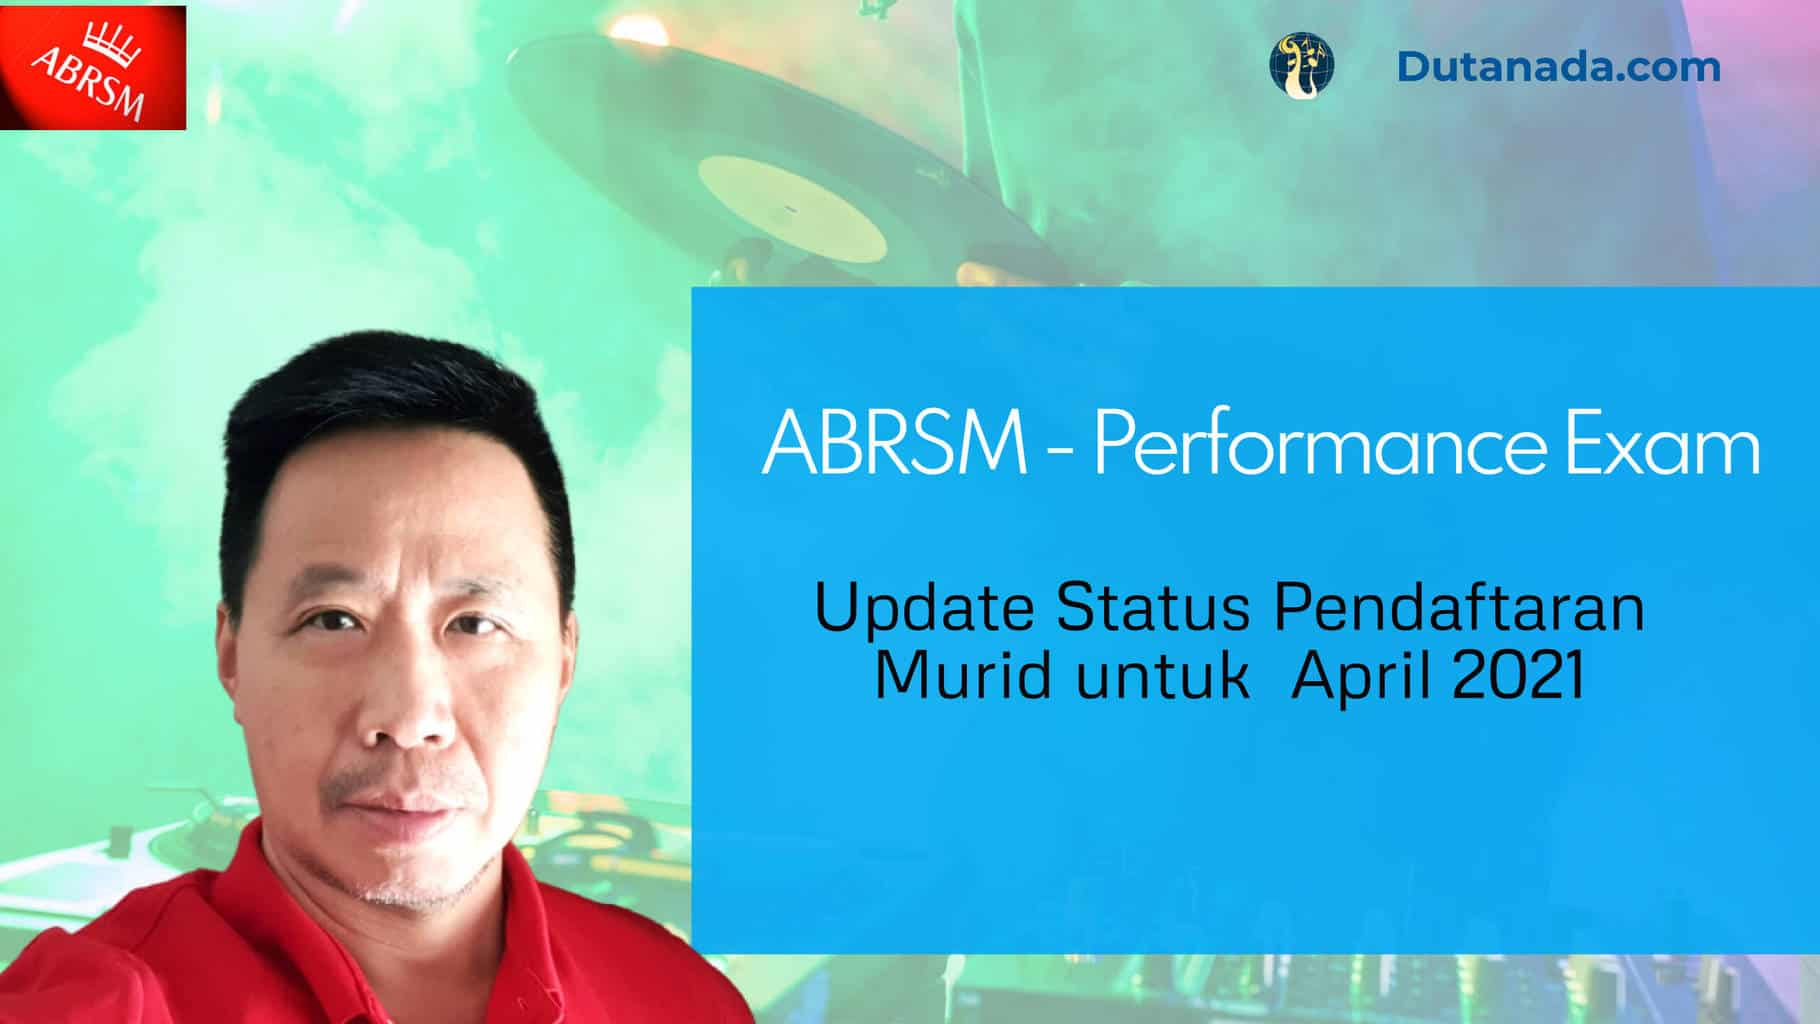 ABRSM Performance Exam